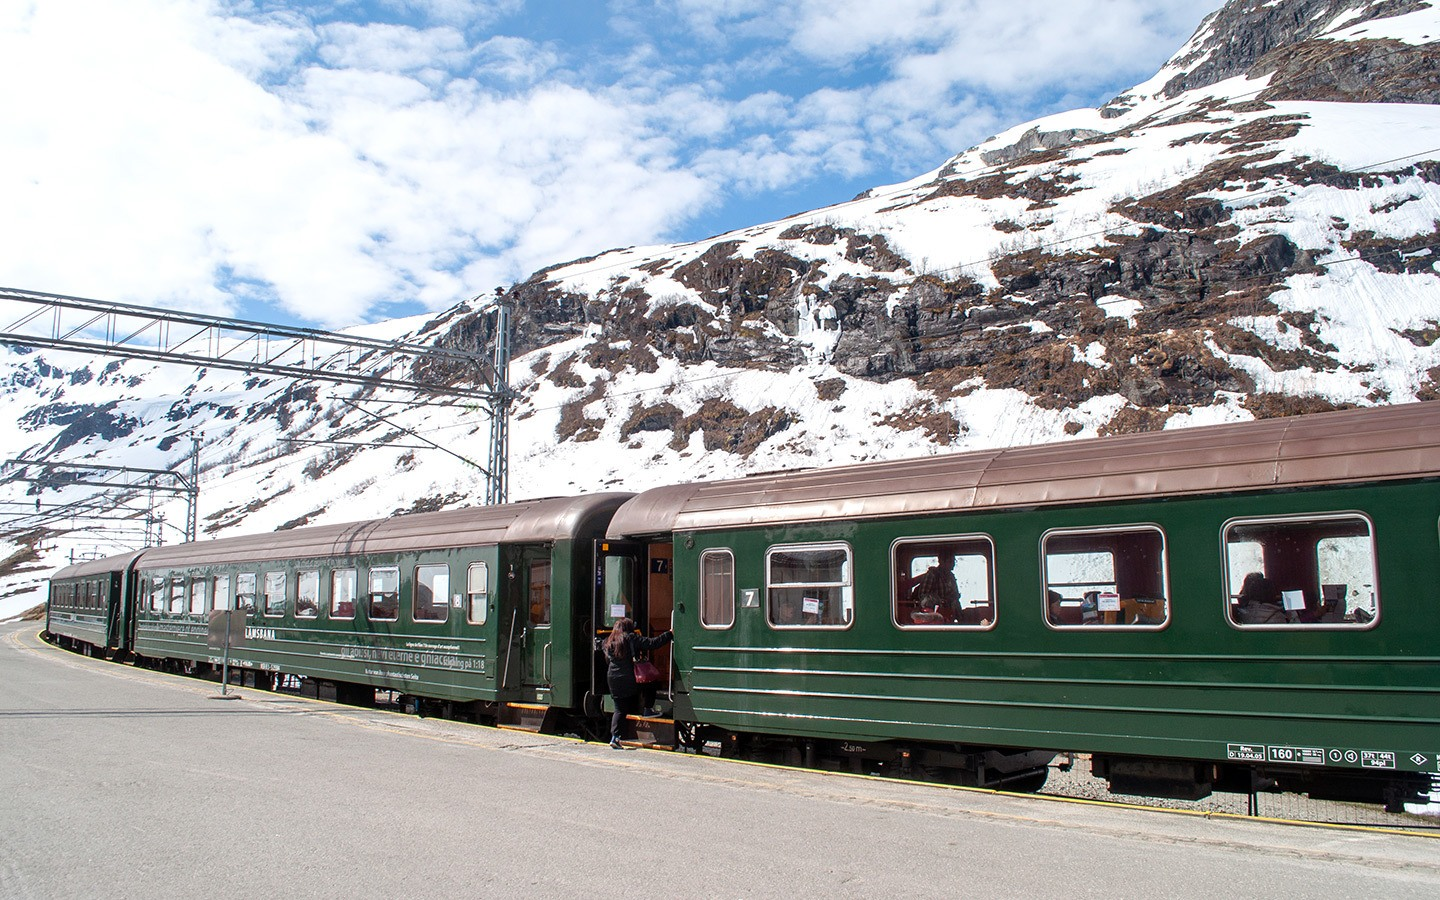 The Flamsbana scenic train in Norway